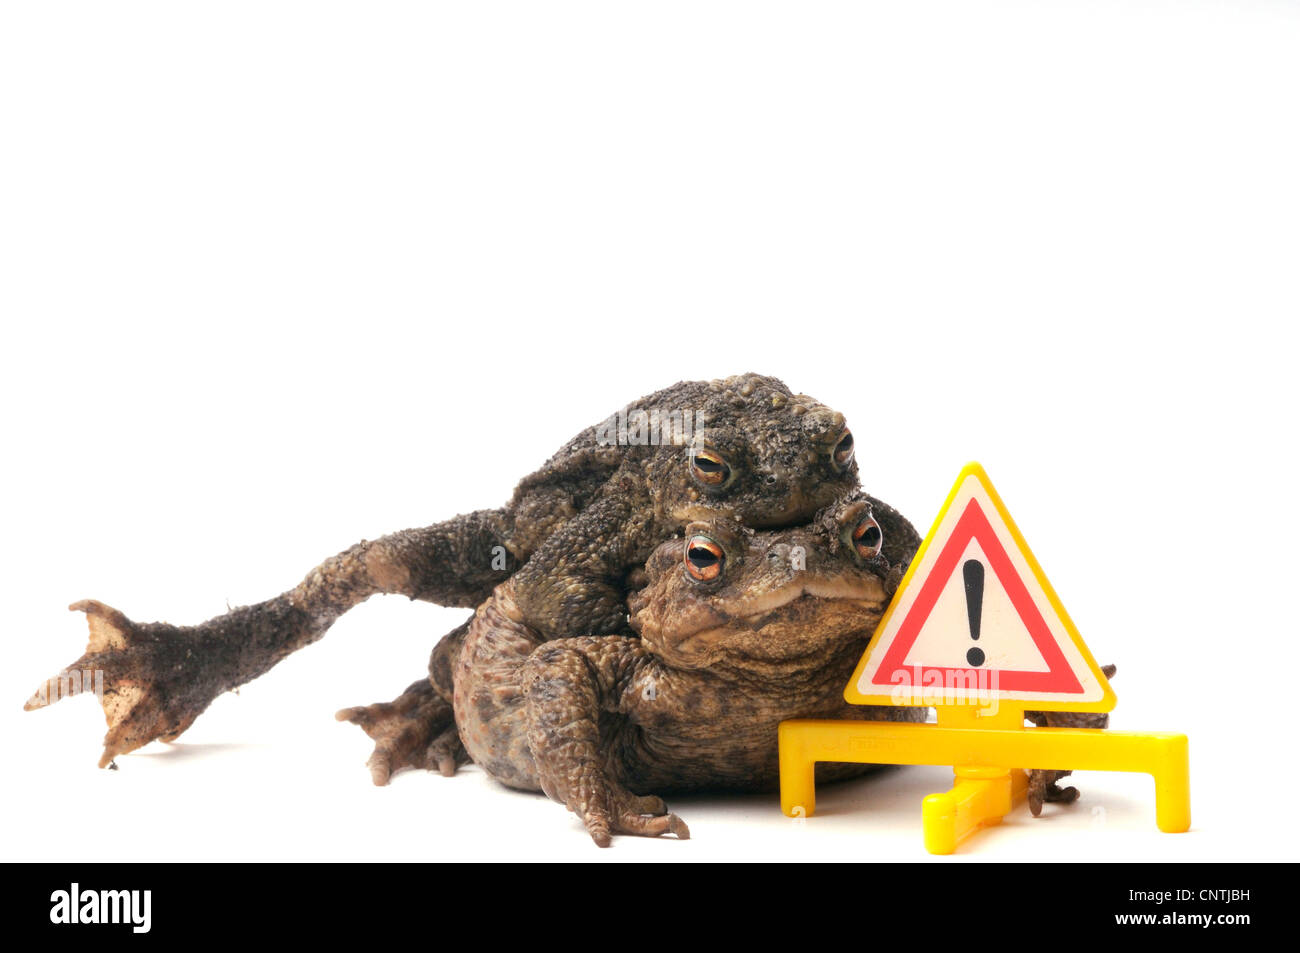 European common toad bufo bufo couple behind a warning triangle european common toad bufo bufo couple behind a warning triangle model germany biocorpaavc Images